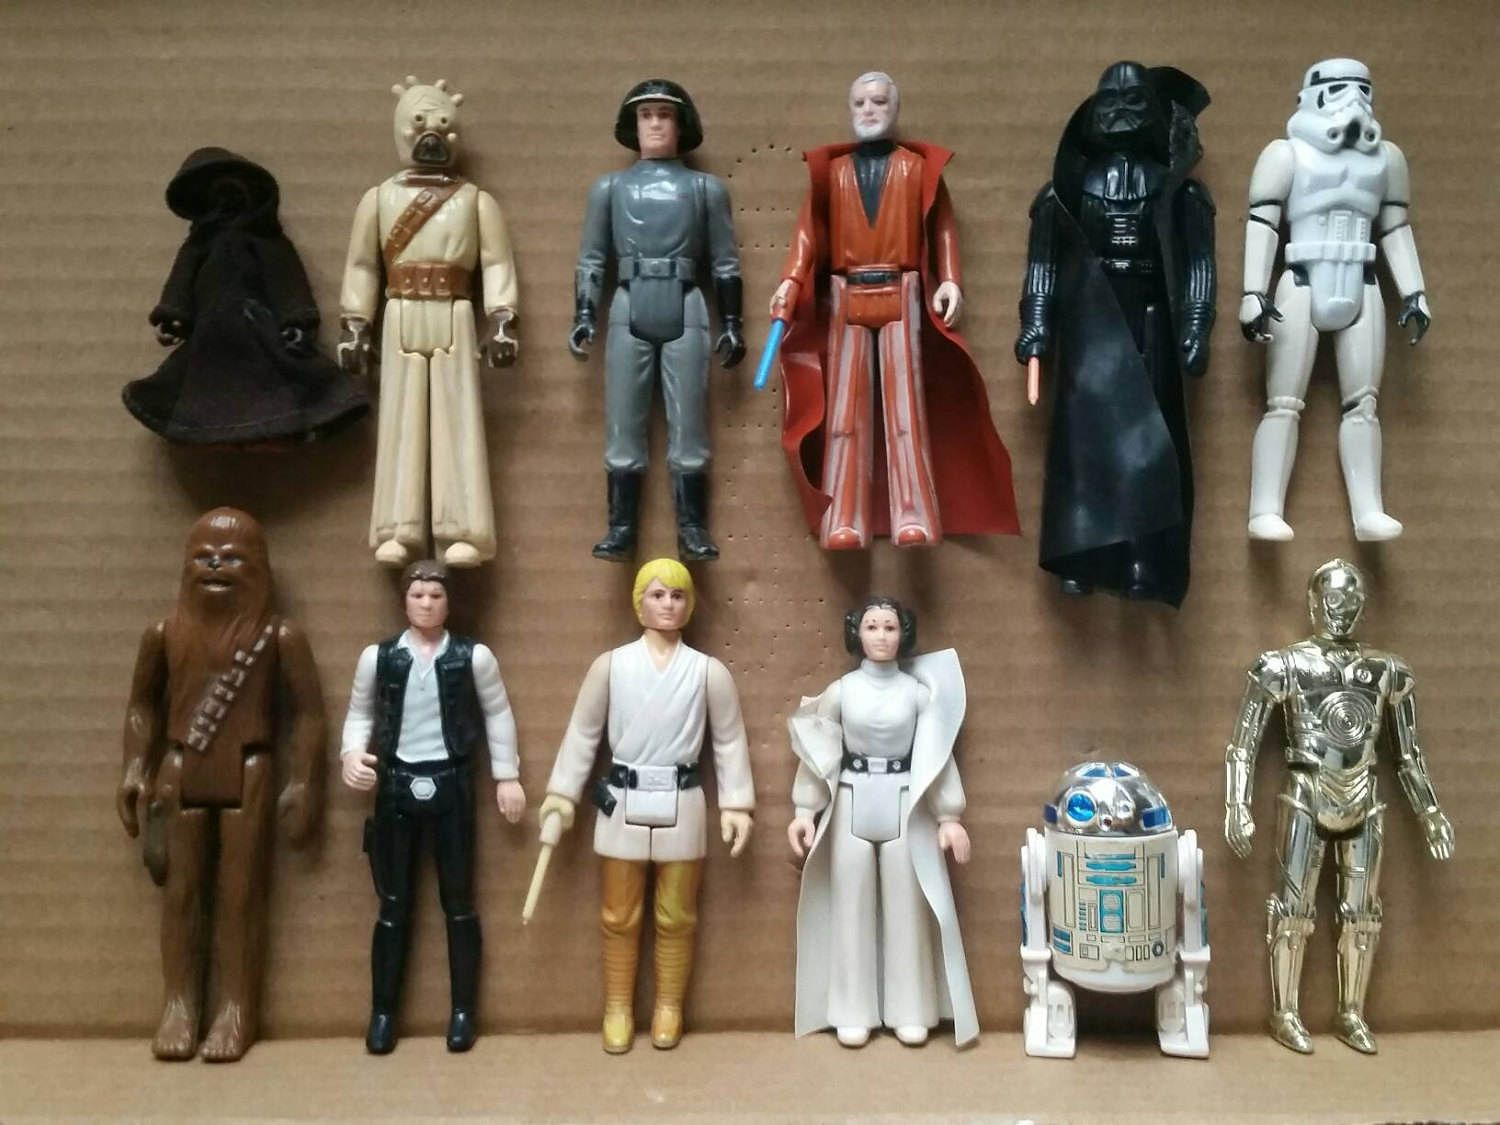 Kenner Star Wars Action Figures The First 12 Beater Budget Figures By St Vintage Star Wars Action Figures Kenner Star Wars Action Figures Star Wars Collection